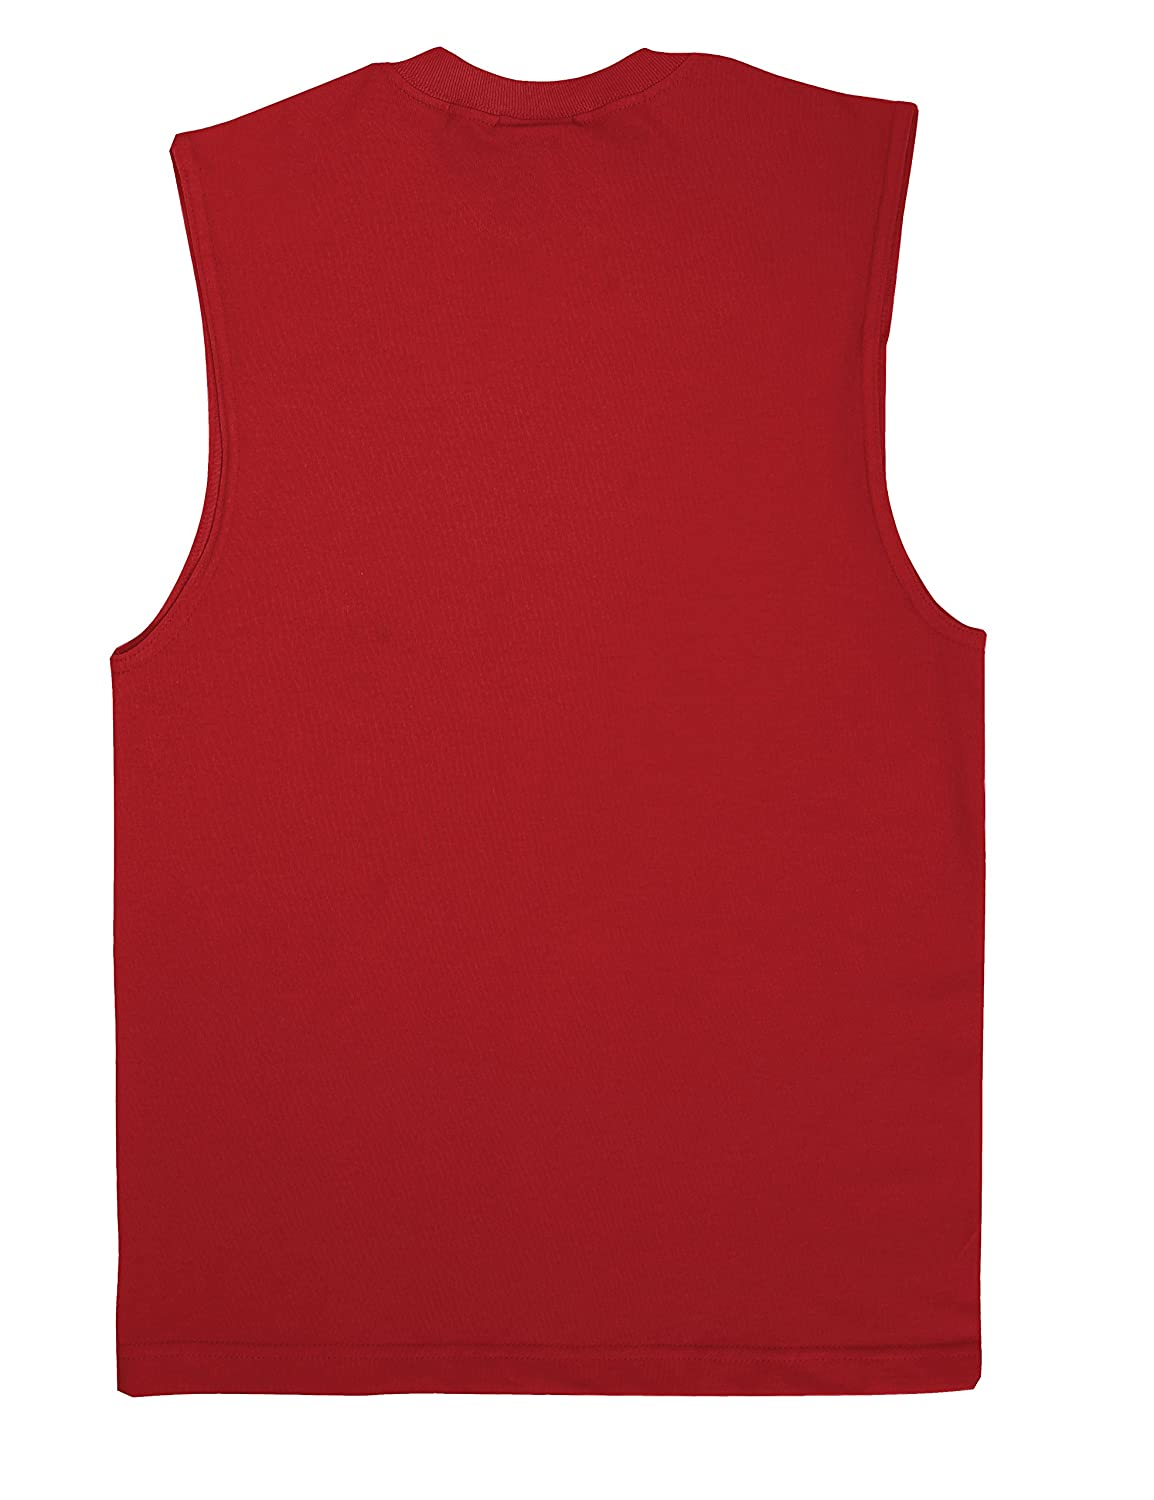 Hat and Beyond Mens Active Muscle Tank Top Athletic Gym Workout Shirts 1TAA0001